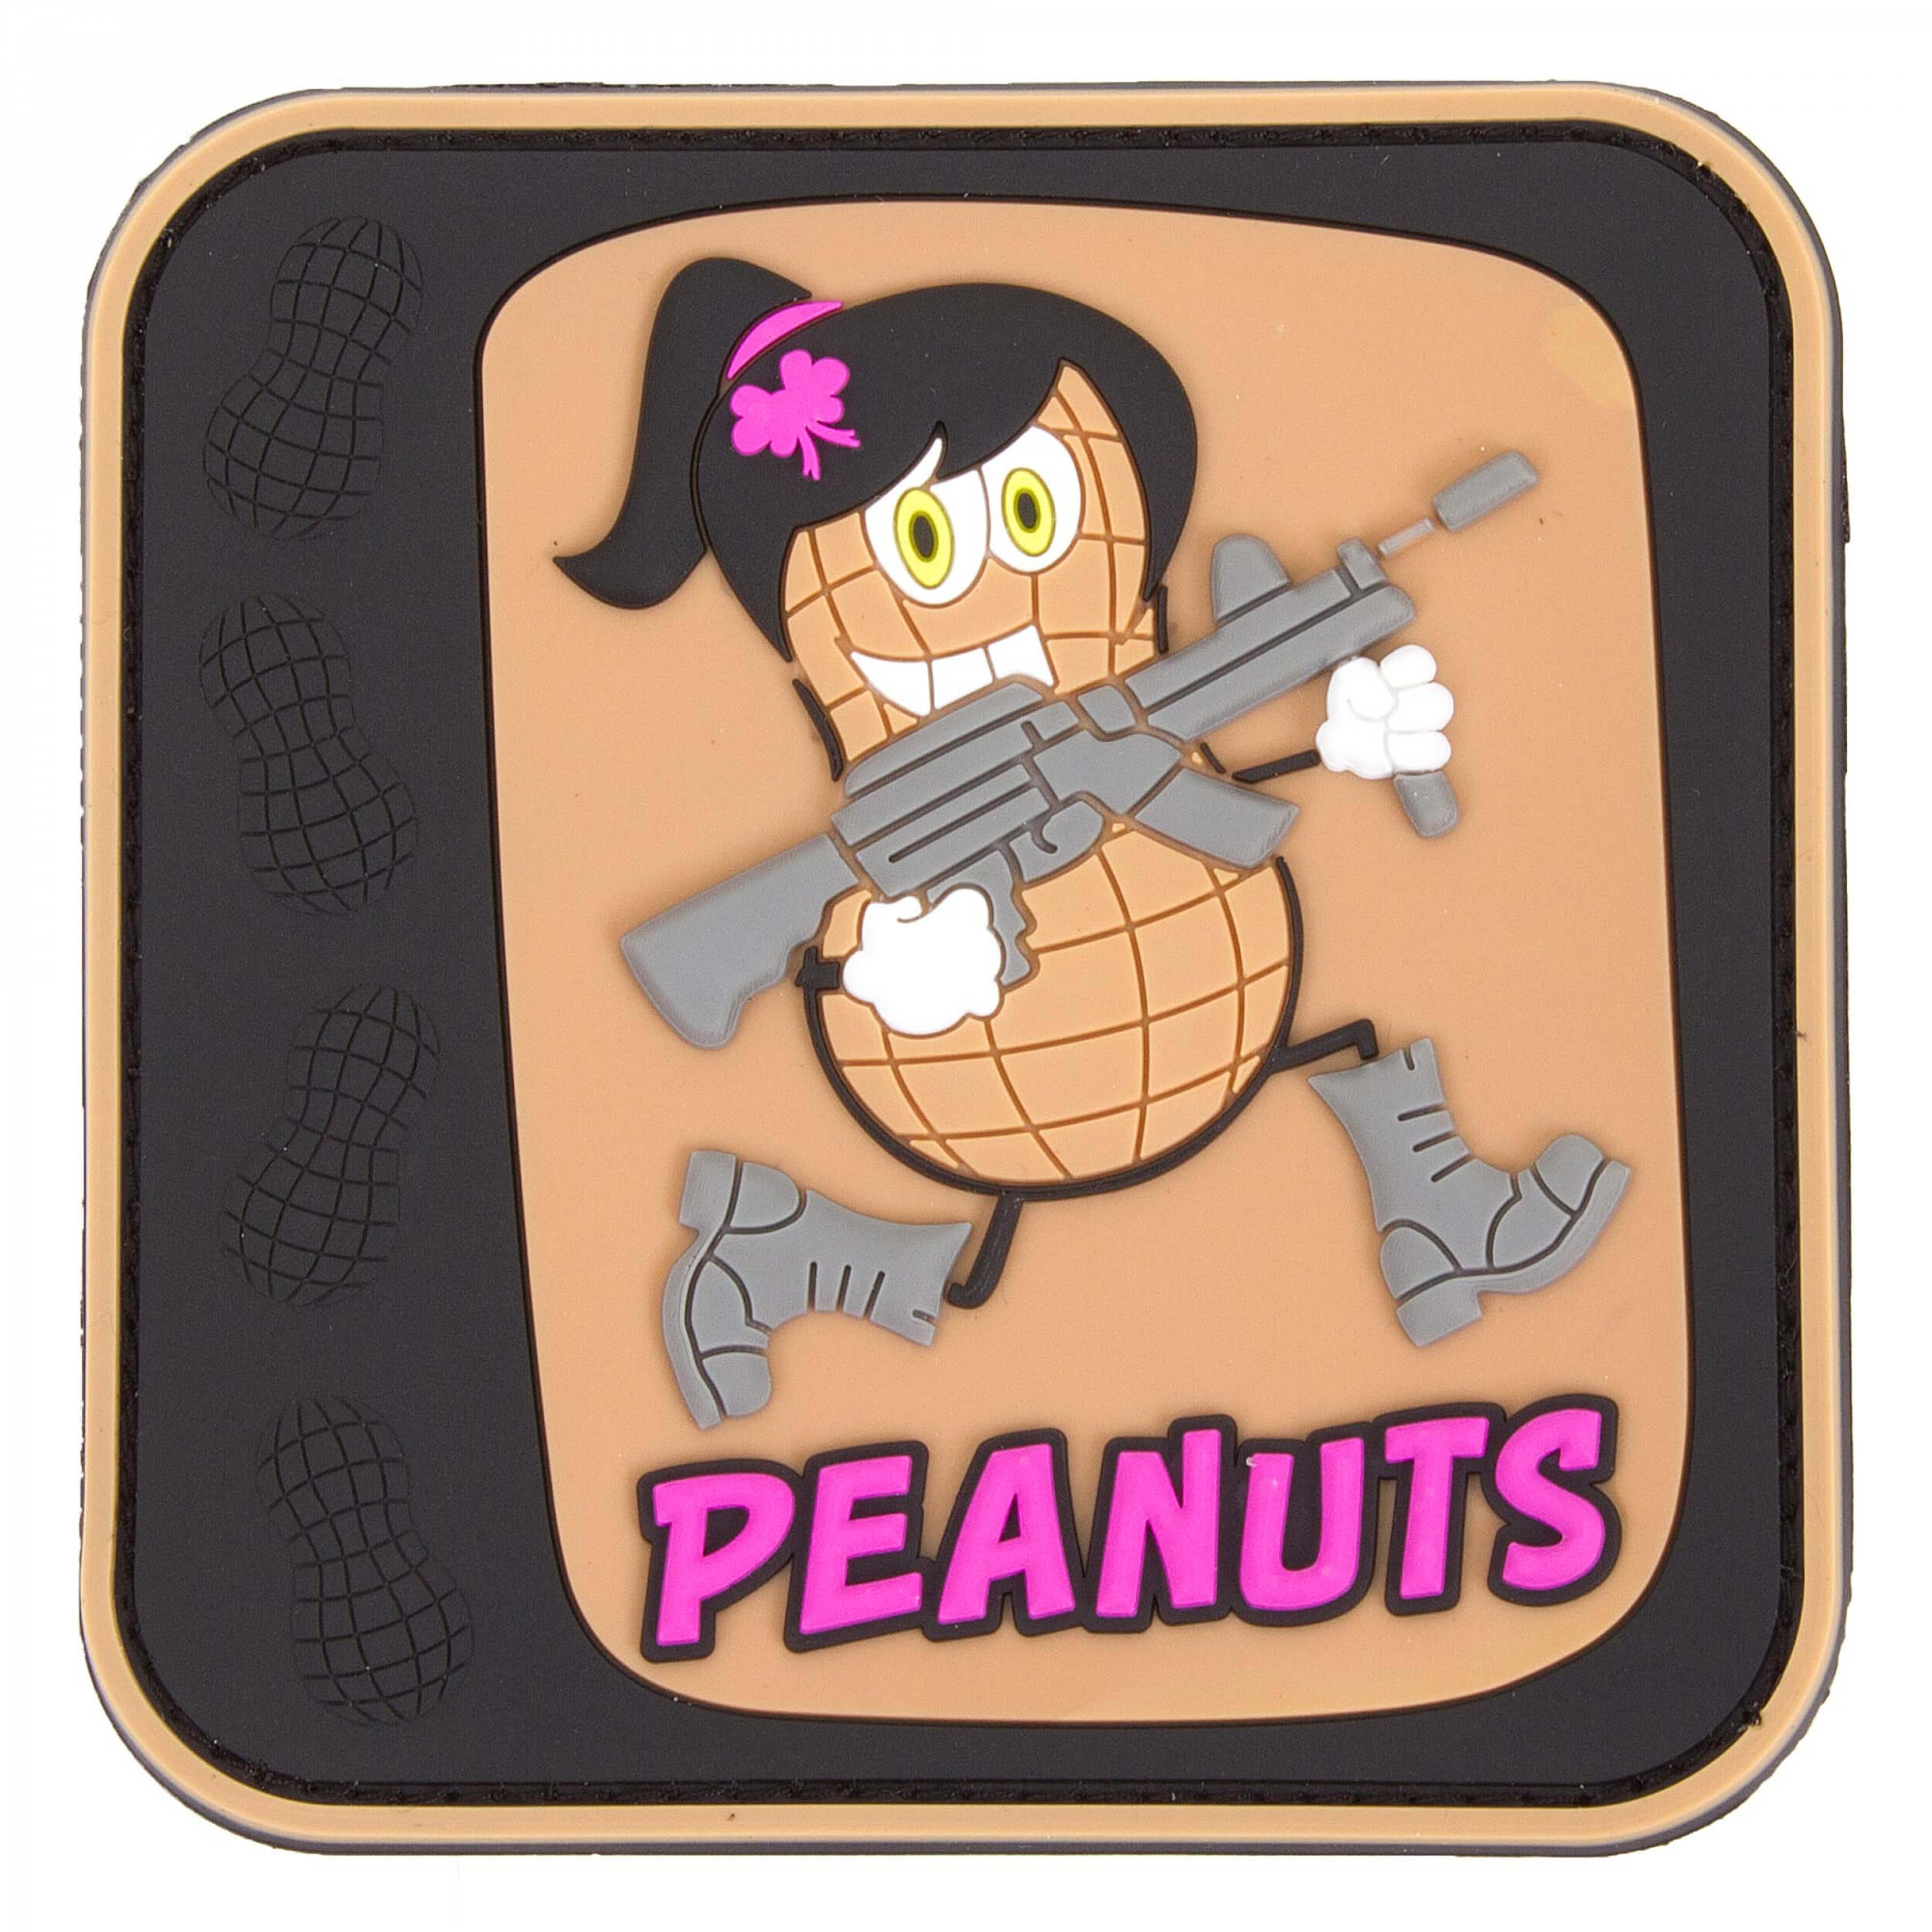 JTG Peanuts Girl, 3D Rubber Patch